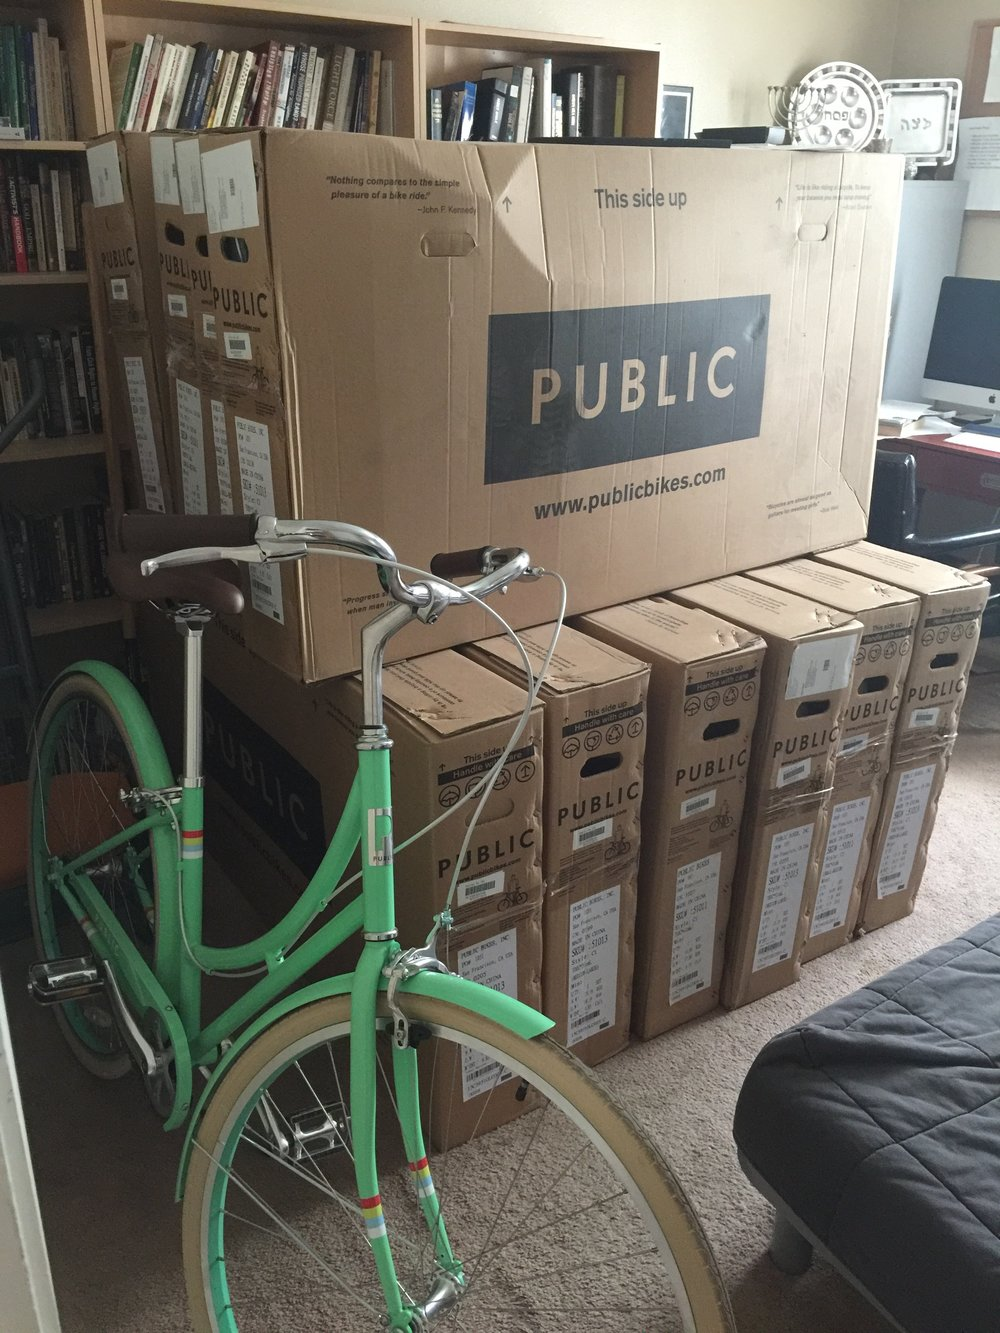 When I conceived of Flambeaux Bicycle Tours I bought a fleet of 11 mint colored PUBLIC Bikes. They're currently sitting in my office. For every $2,000 that we raise, I am going to take a bicycle out of the box and put it together. Be a part of this exciting  campaign  to get them out of my house and into a storefront!